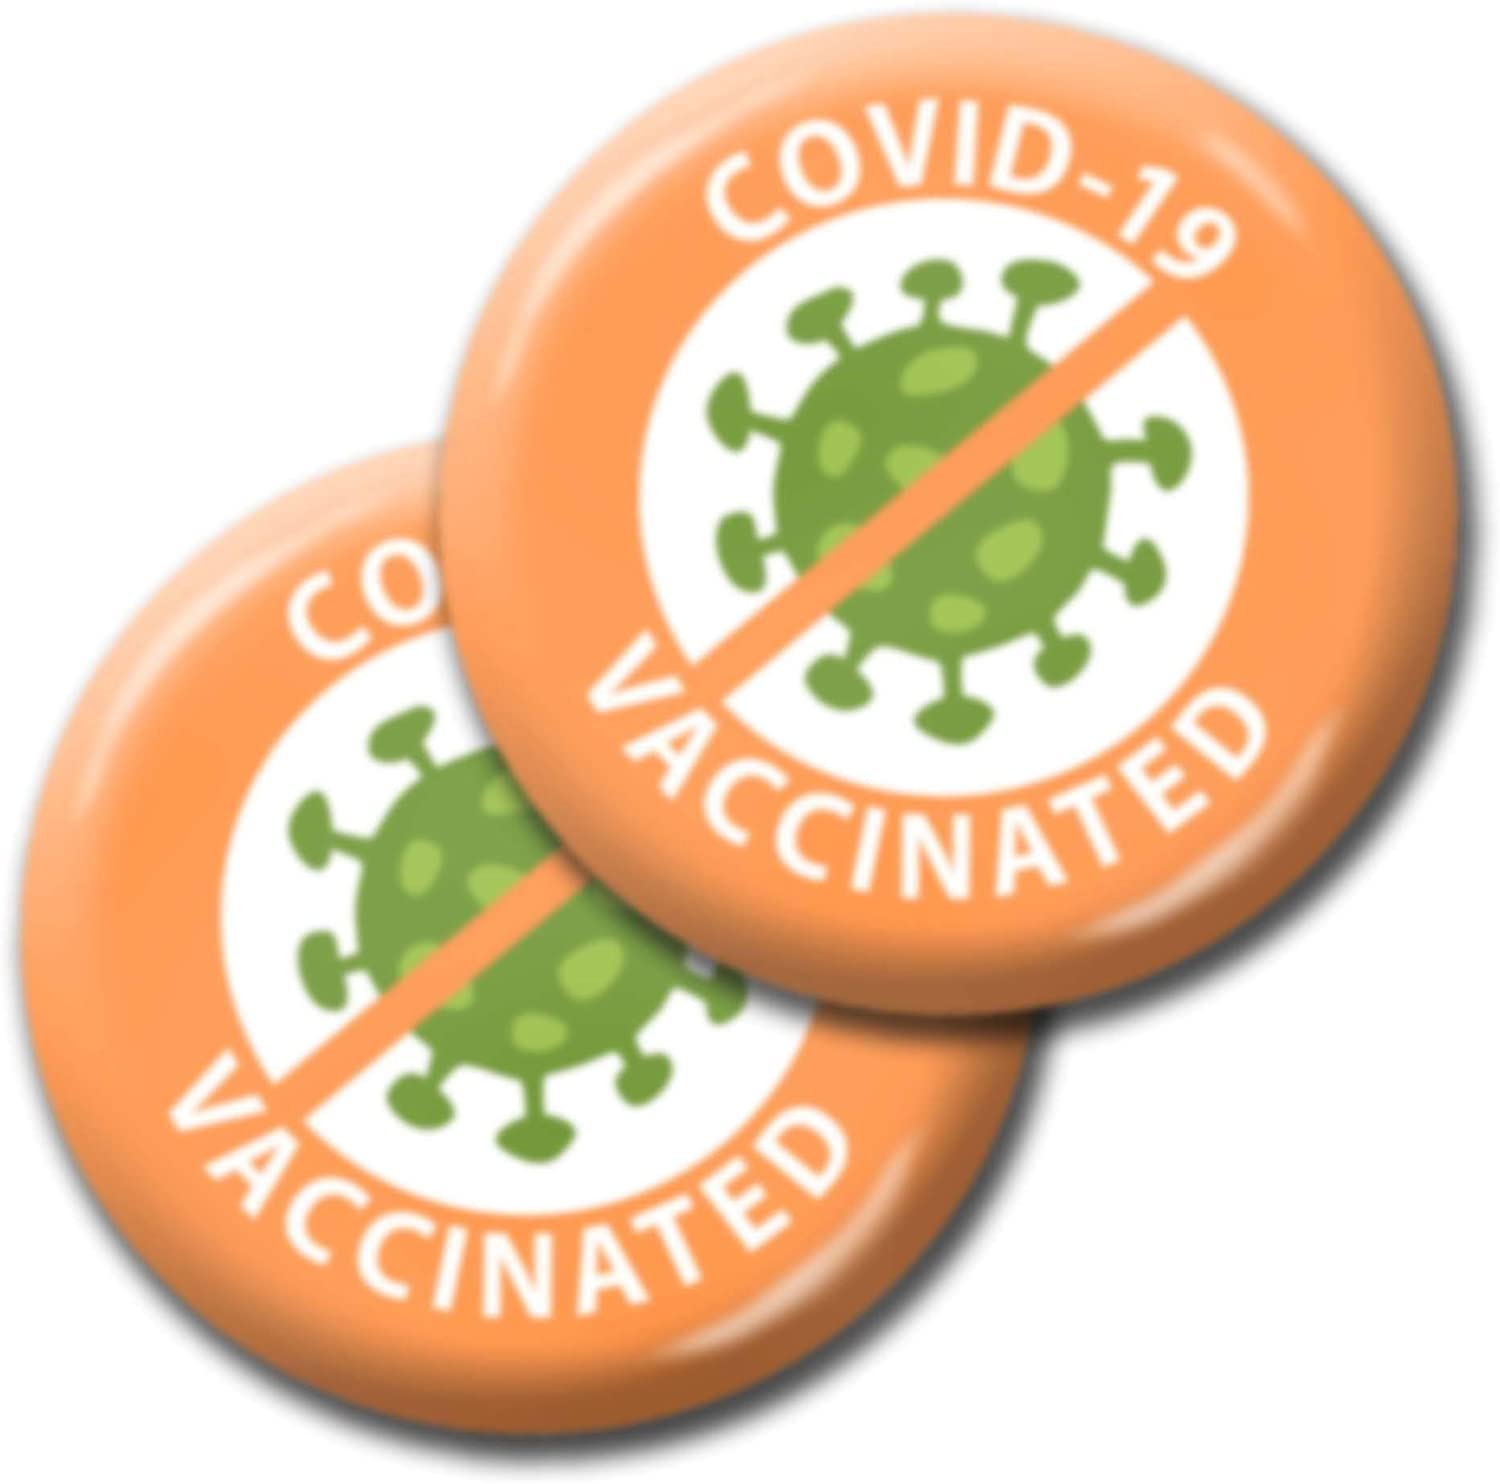 Covid Vaccinated Awareness San Antonio Mall Pin It is very popular - I My Button Vaccine 2-Pac Got